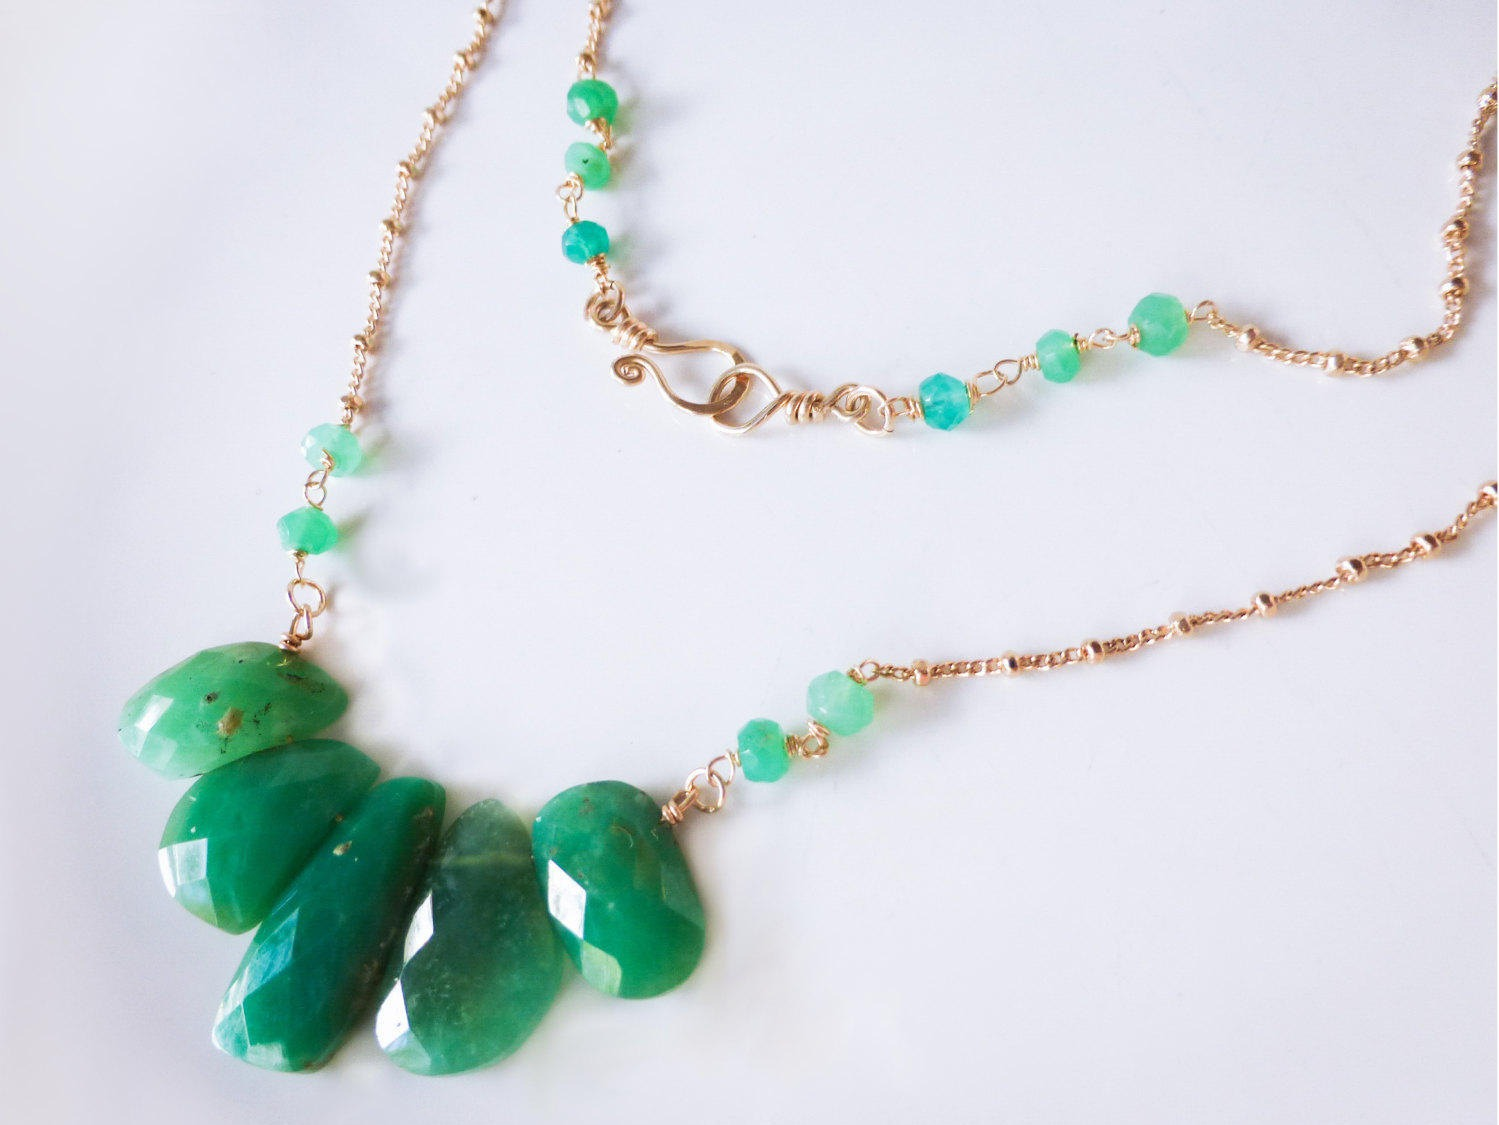 stones maile sk pendant necklace products chrysoprase handmade